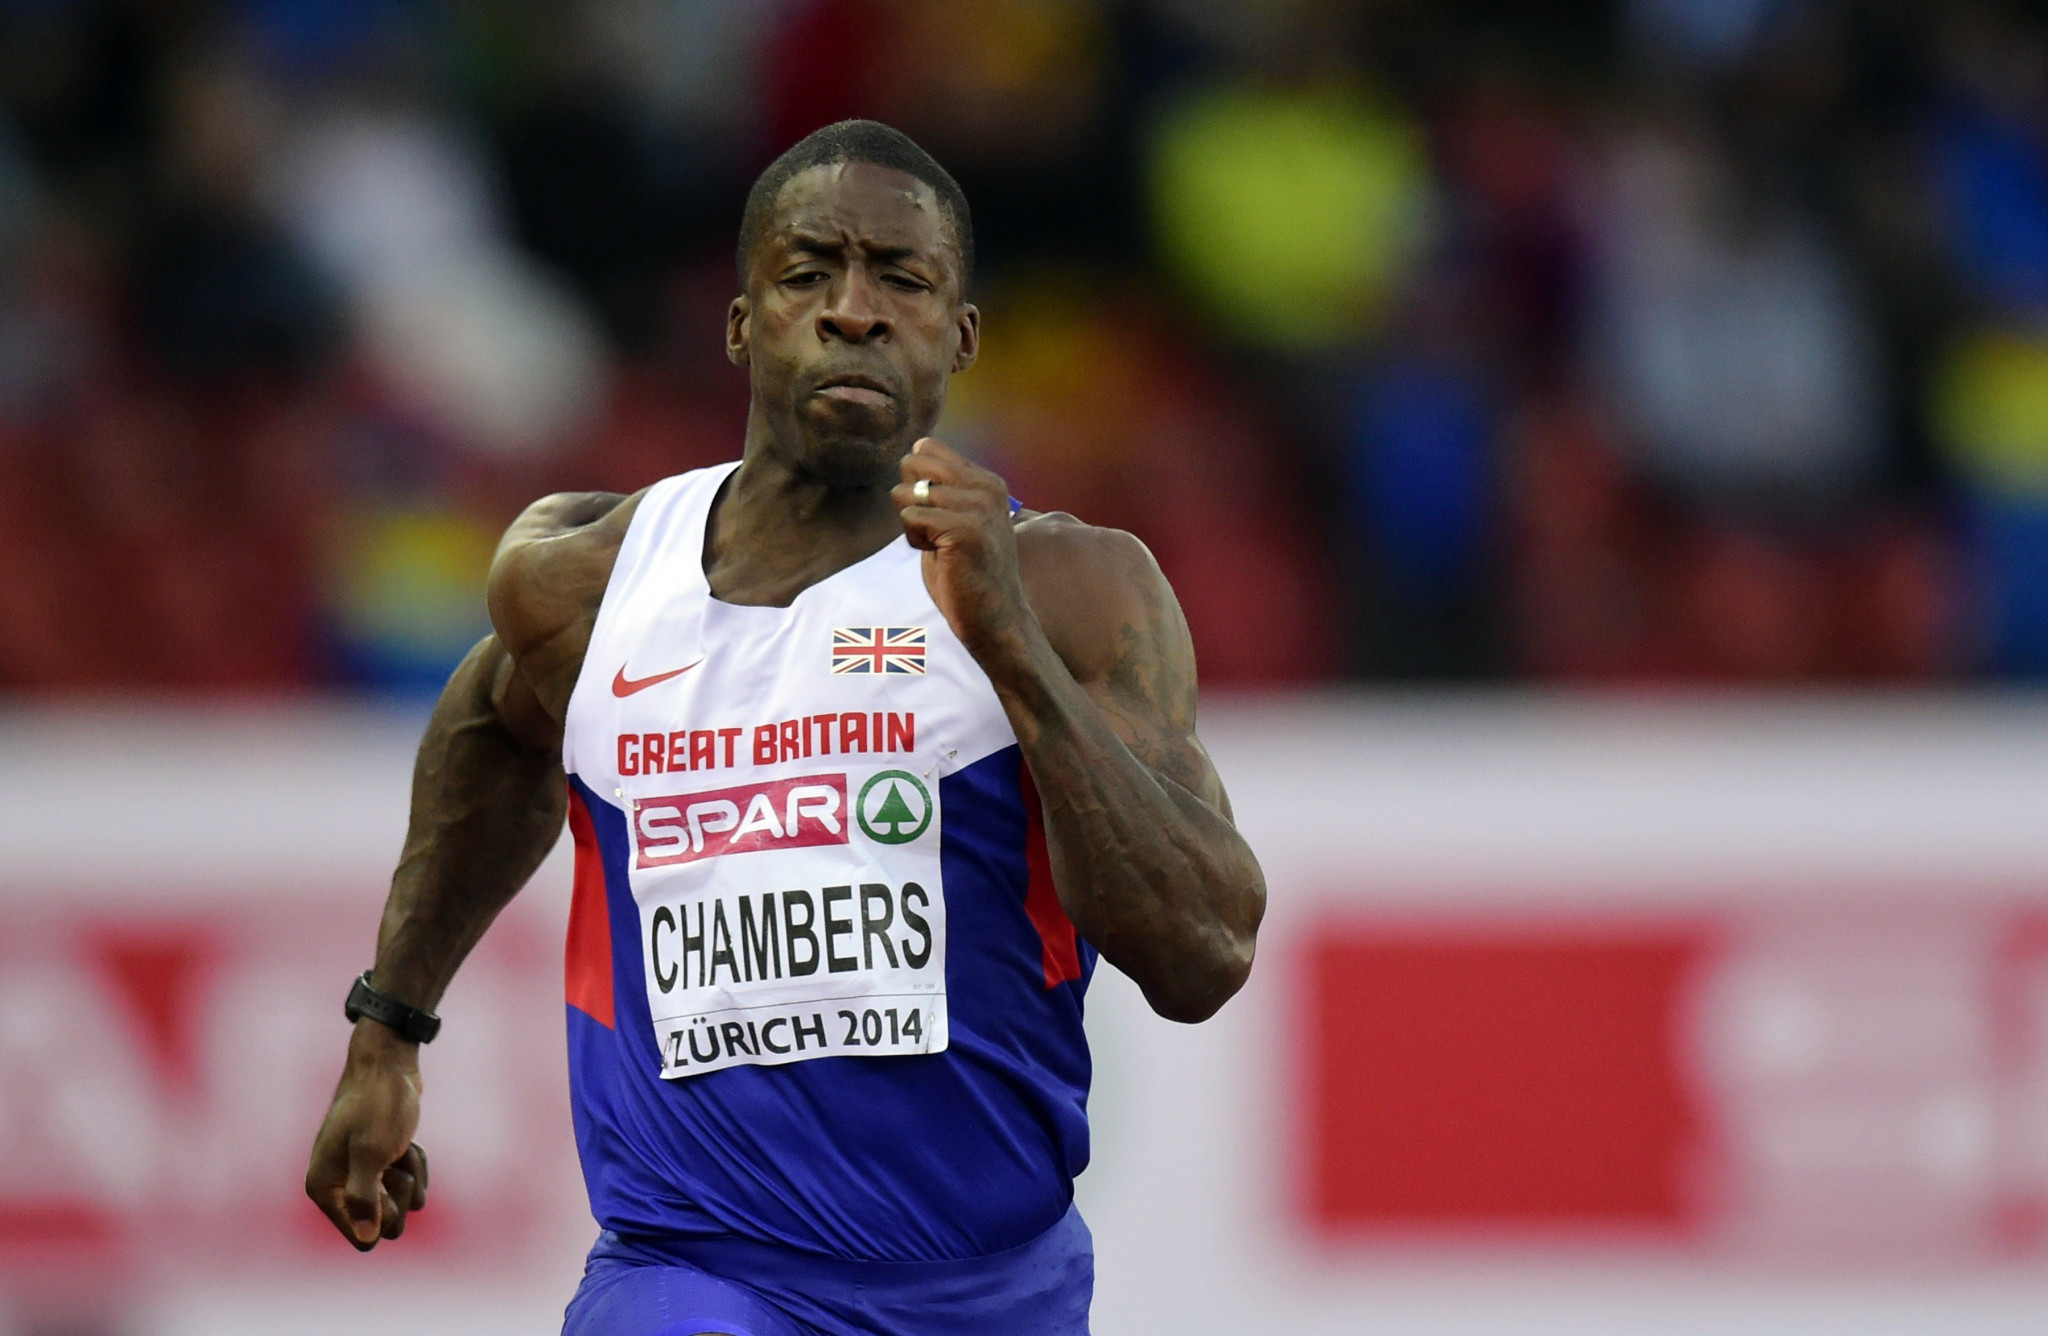 Britain's Dwain Chambers is among those to have divided public opinion regarding doping cases ©Getty Images